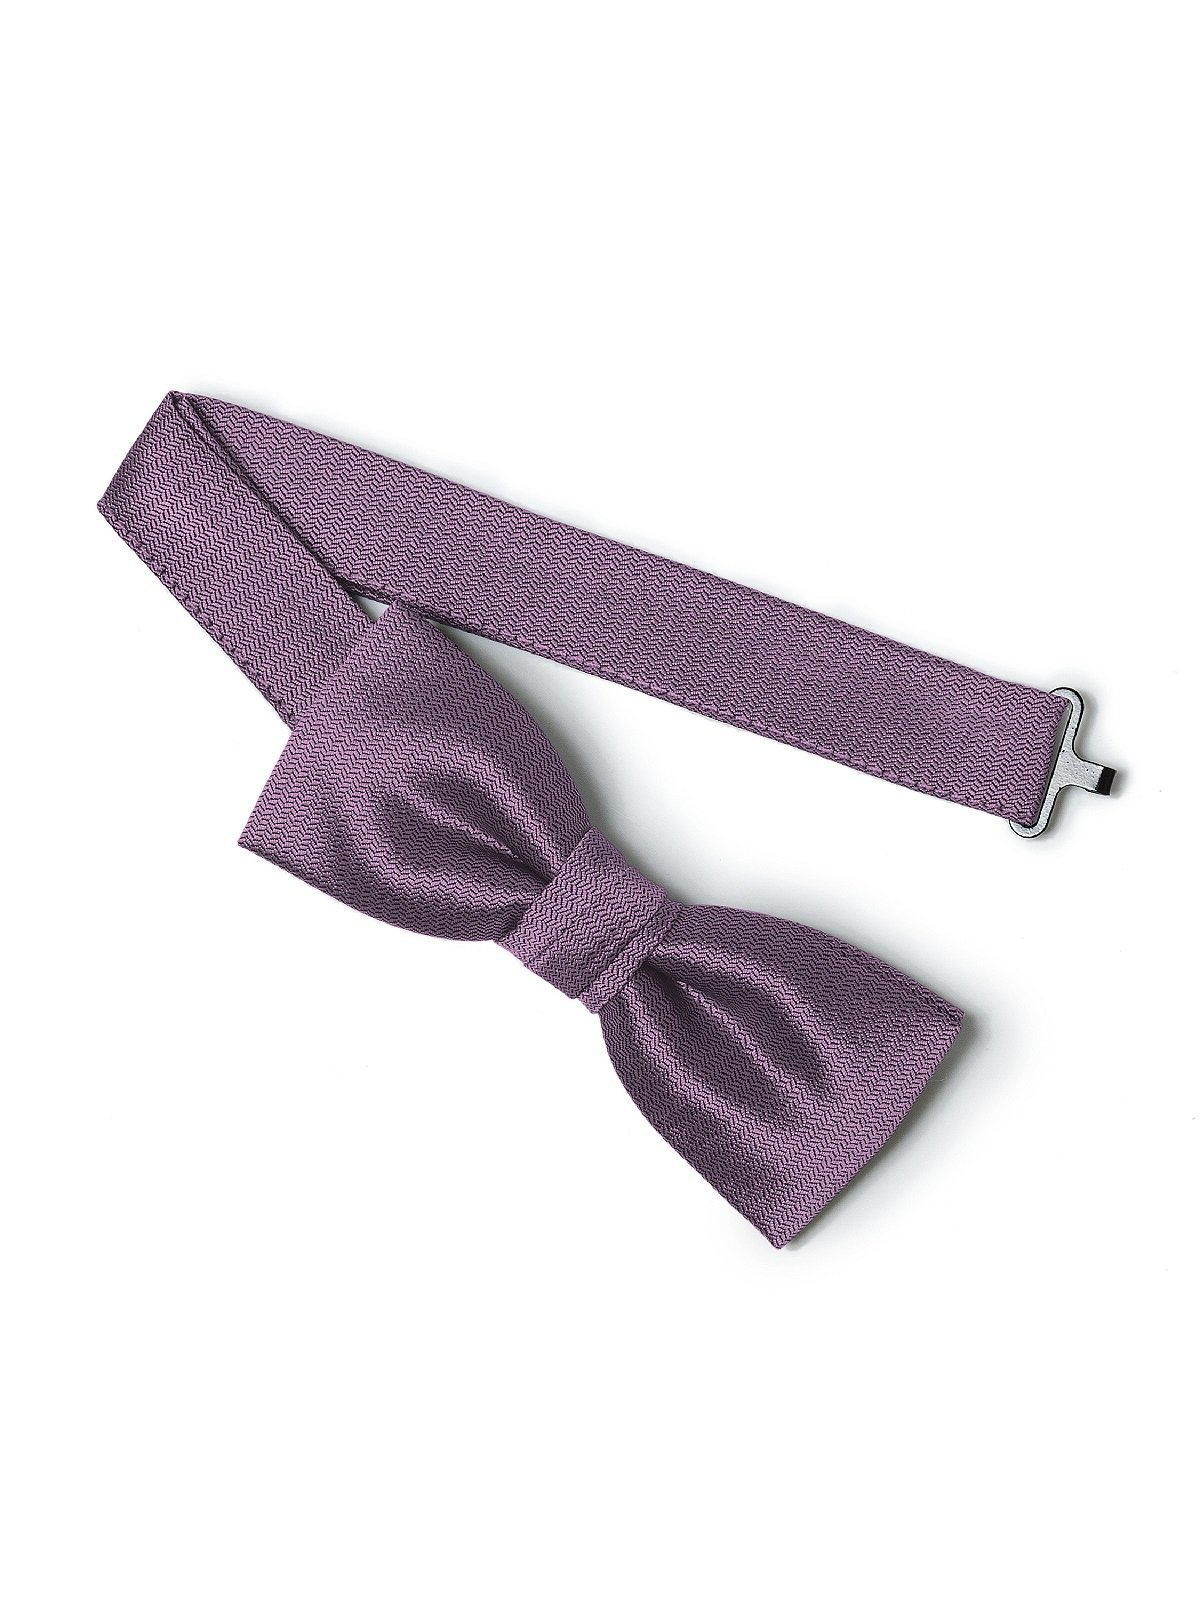 Boy's Paragon Jacquard Bowtie by After Six from Dessy - Smashing